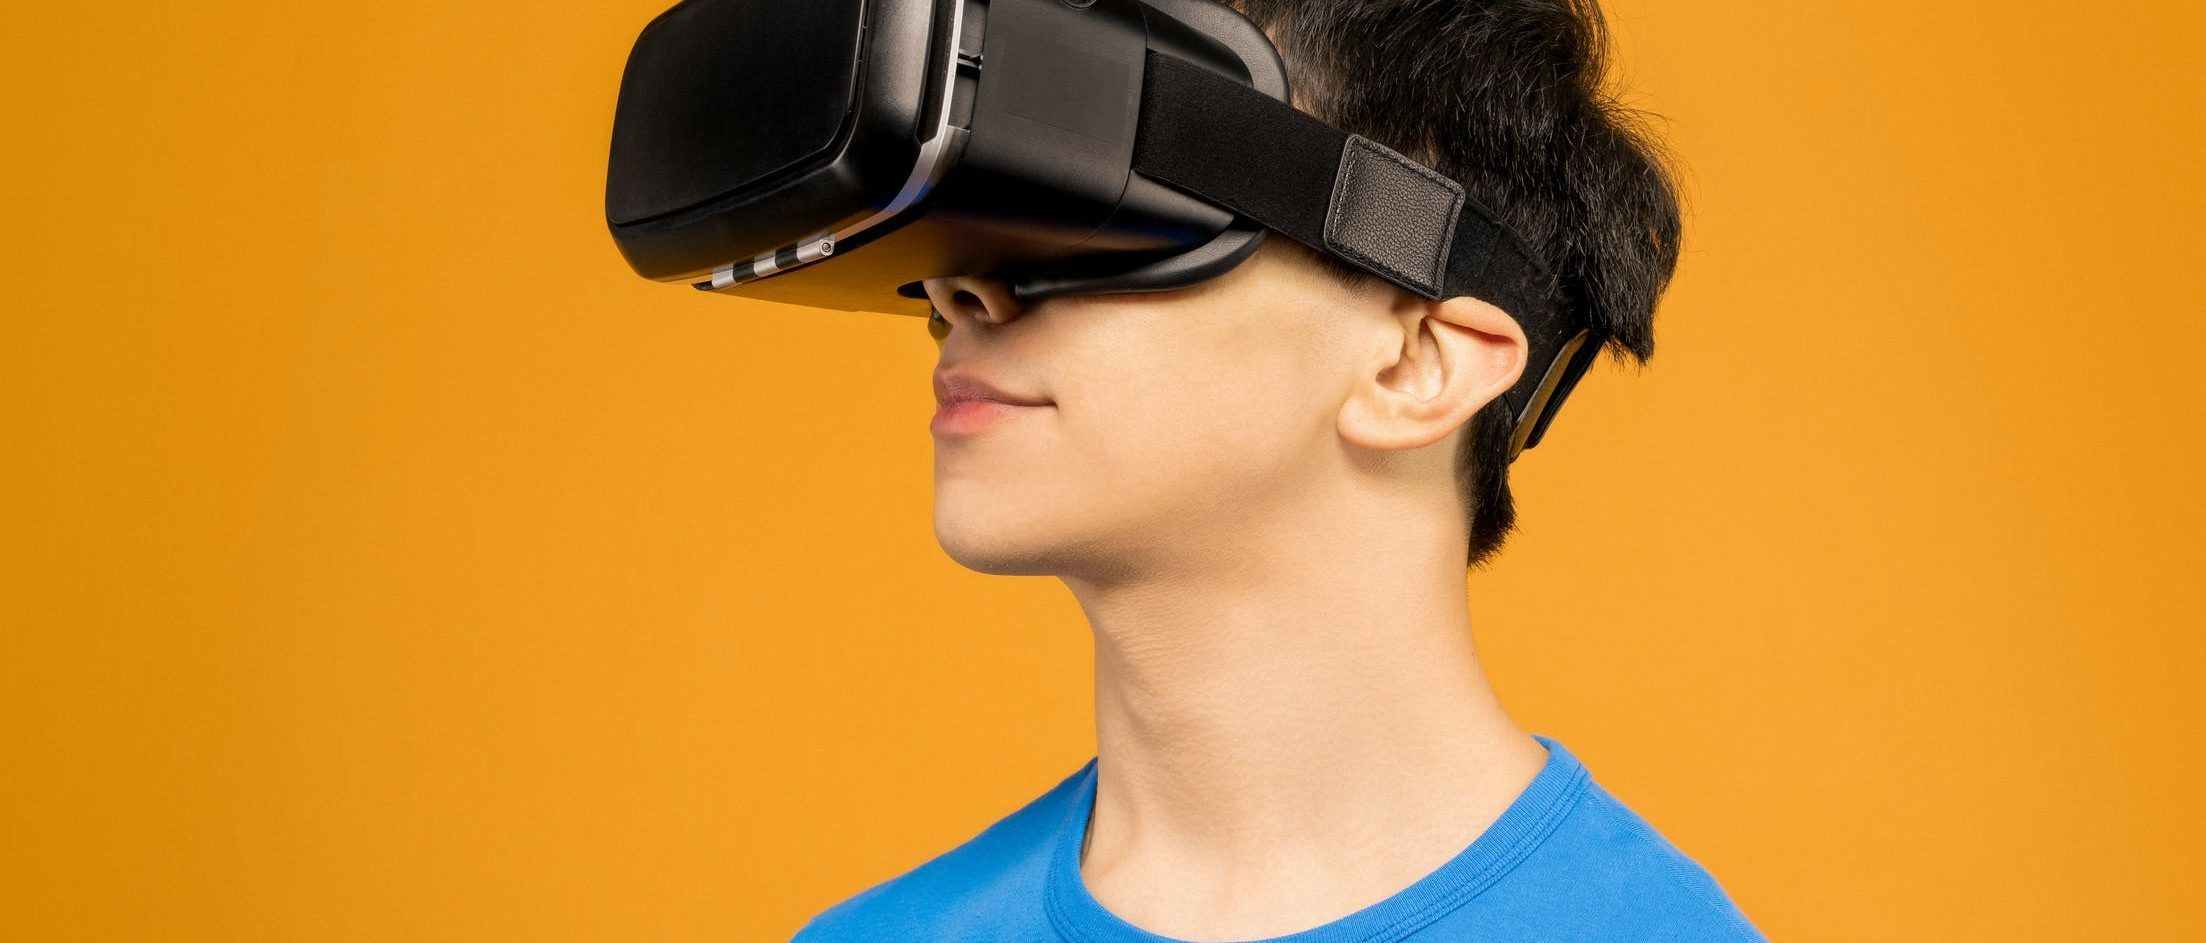 VR Gaming Future PC Gamers